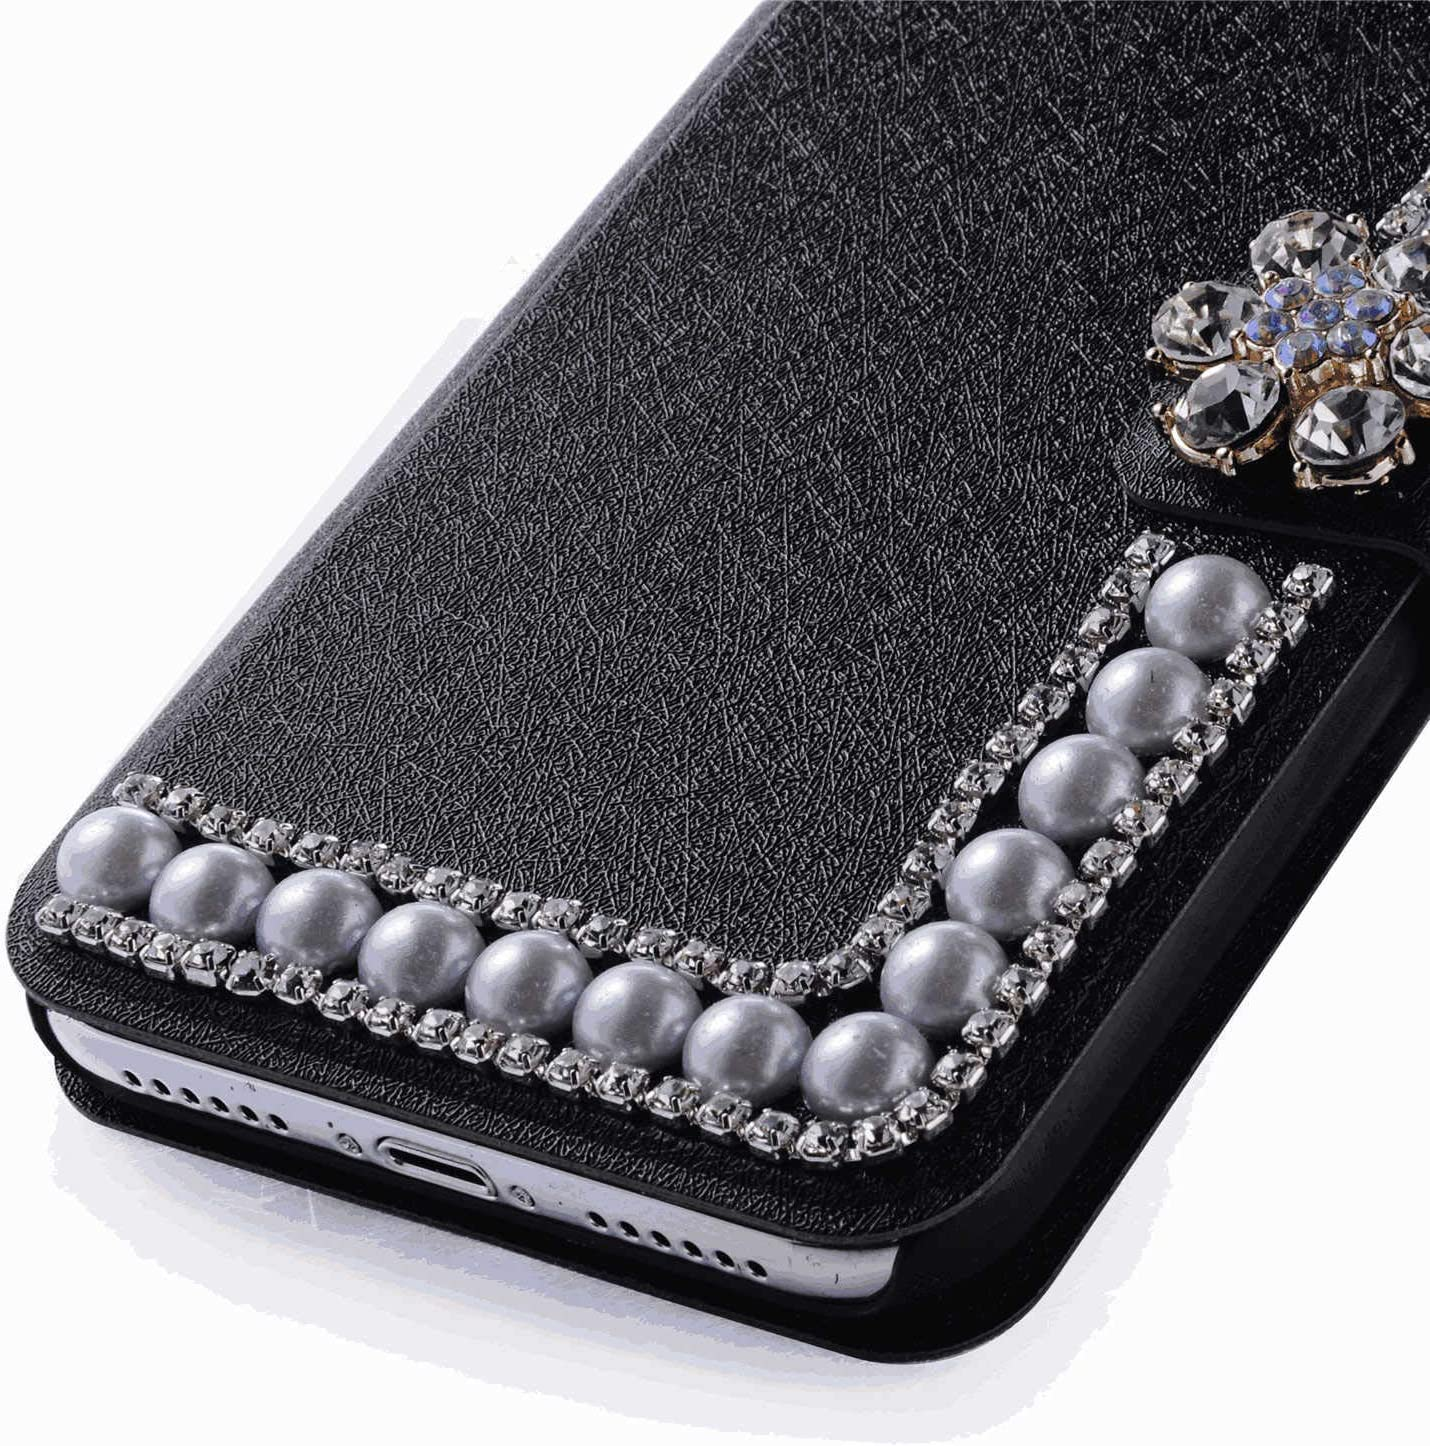 Leather Flip Case for Samsung Galaxy S10e Wallet Cover with Viewing Stand and Card Slots Bussiness Phone Case with Free Waterproof Case